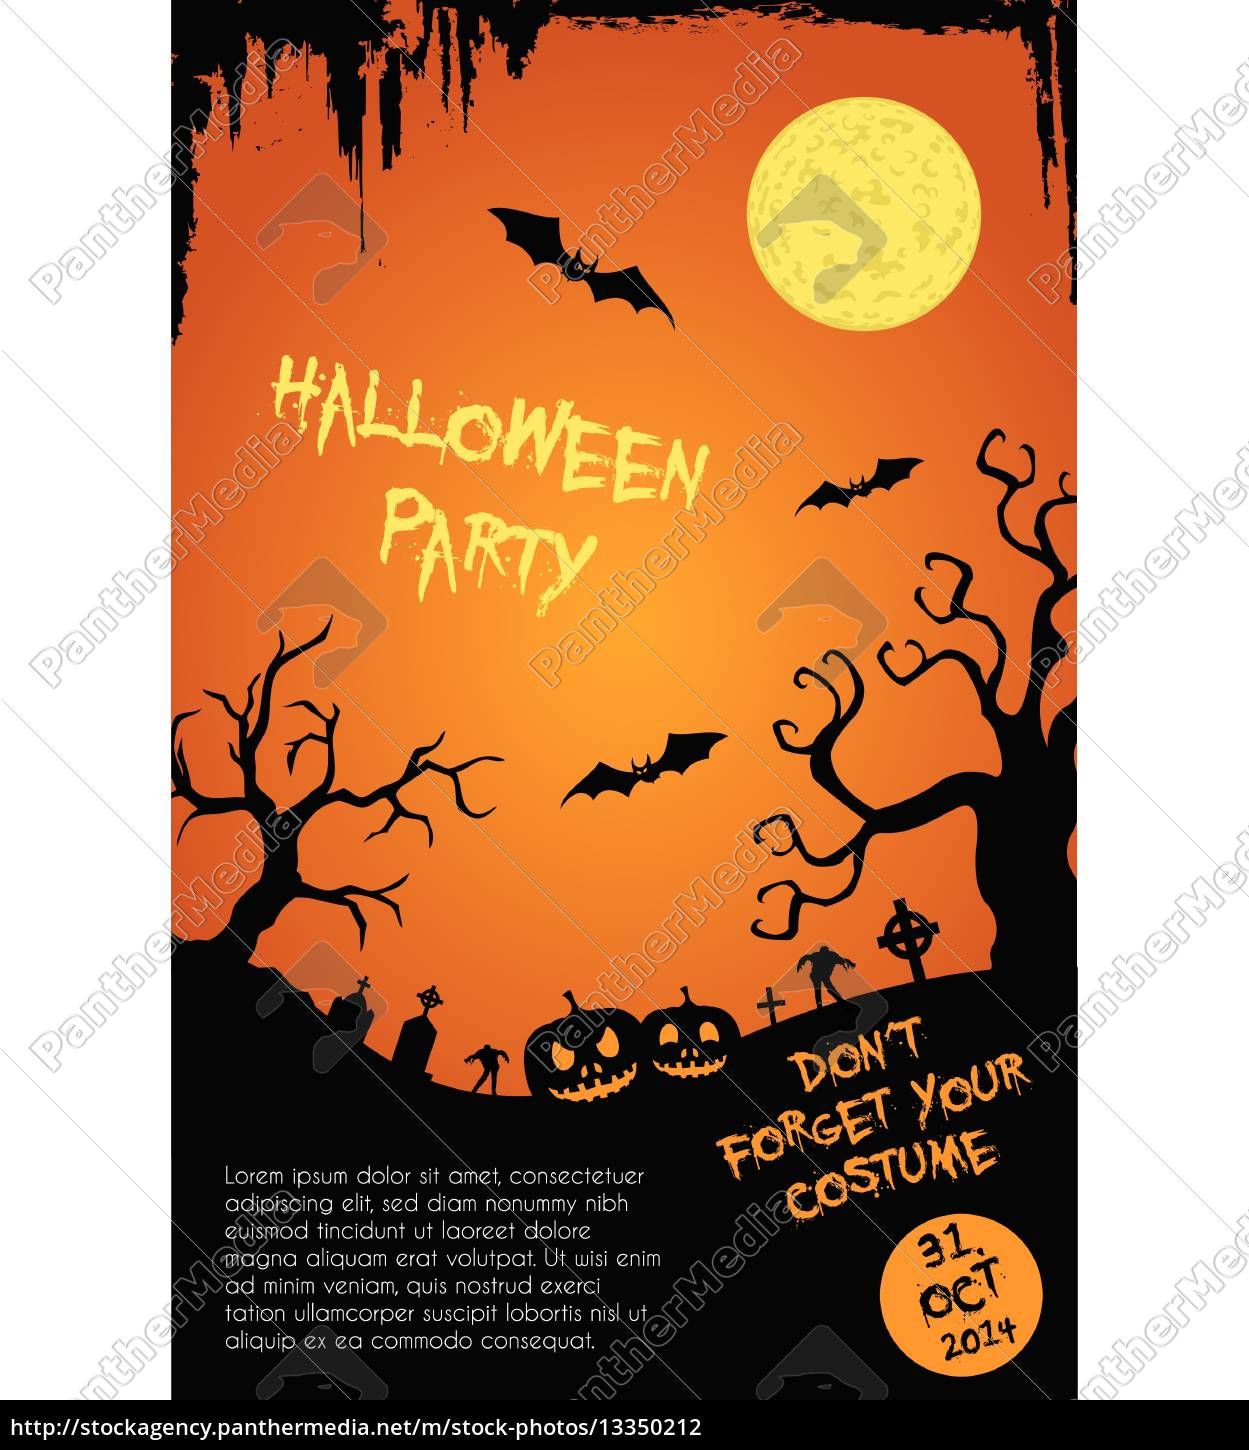 Halloween Party Flyer Template Orange And Black Royalty Free Photo 13350212 Panthermedia Stock Agency